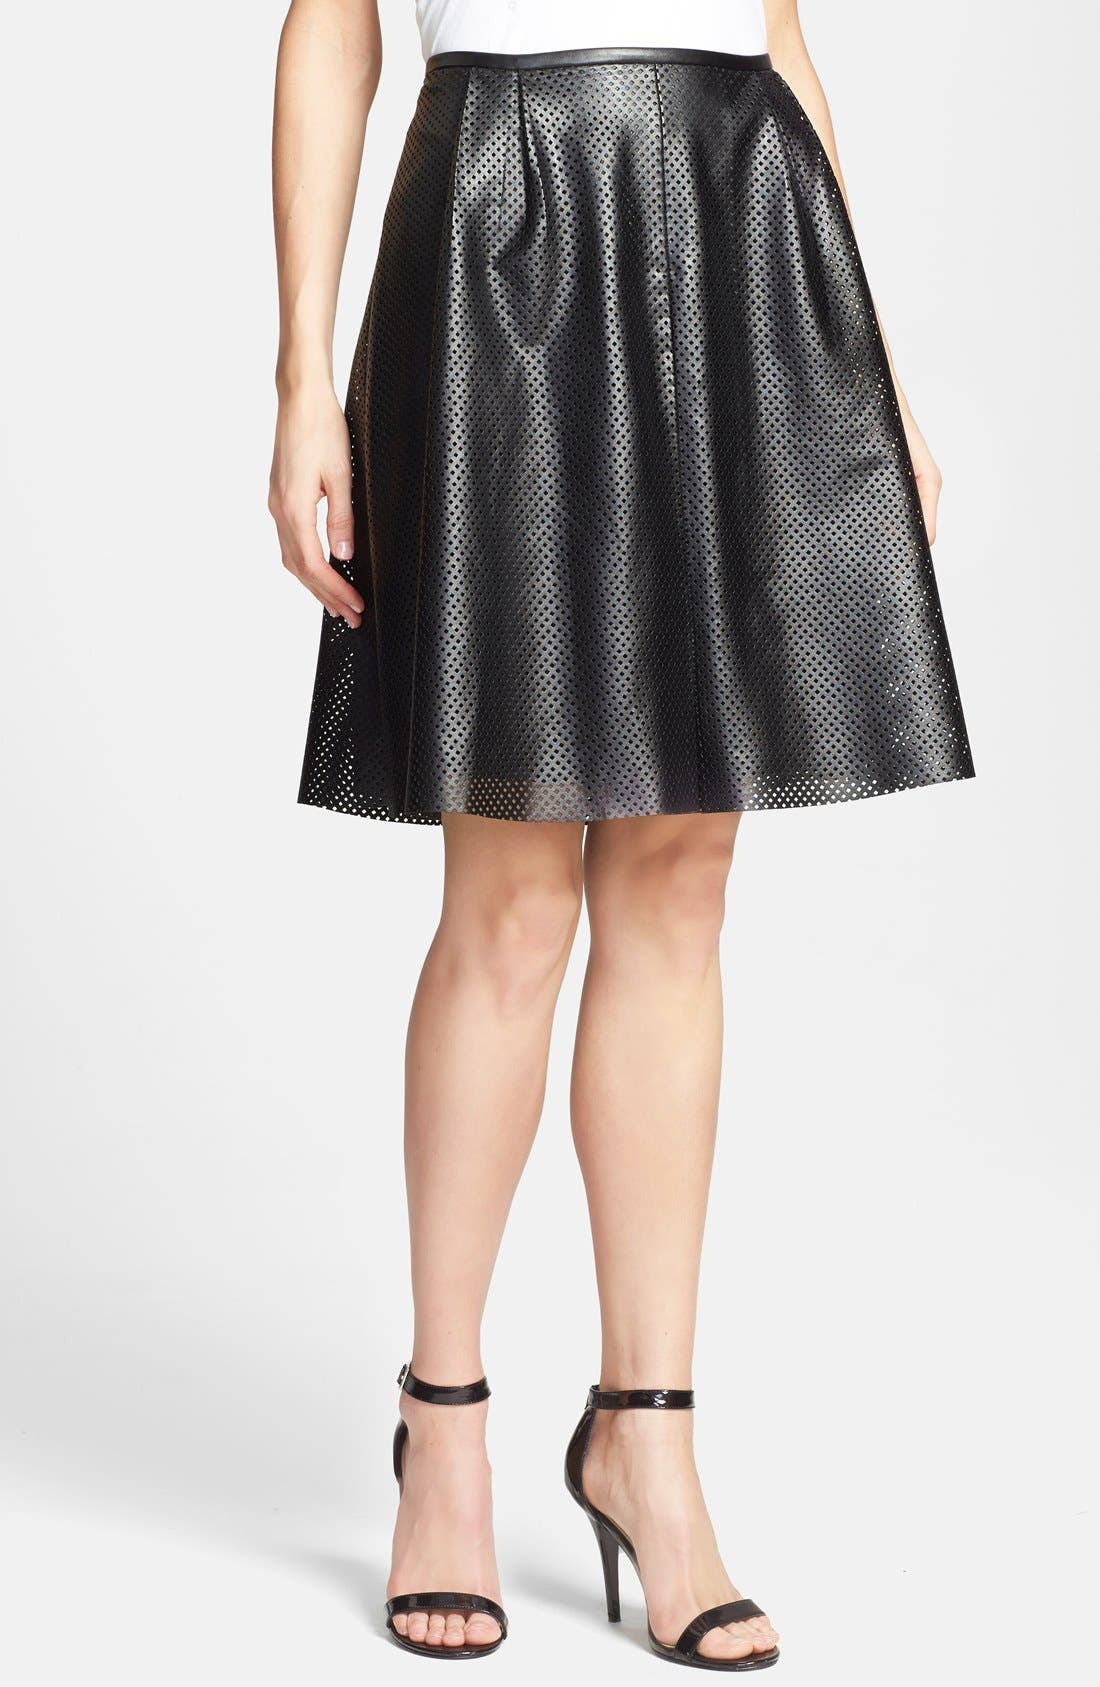 Alternate Image 1 Selected - Calvin Klein Perforated Faux Leather Skirt